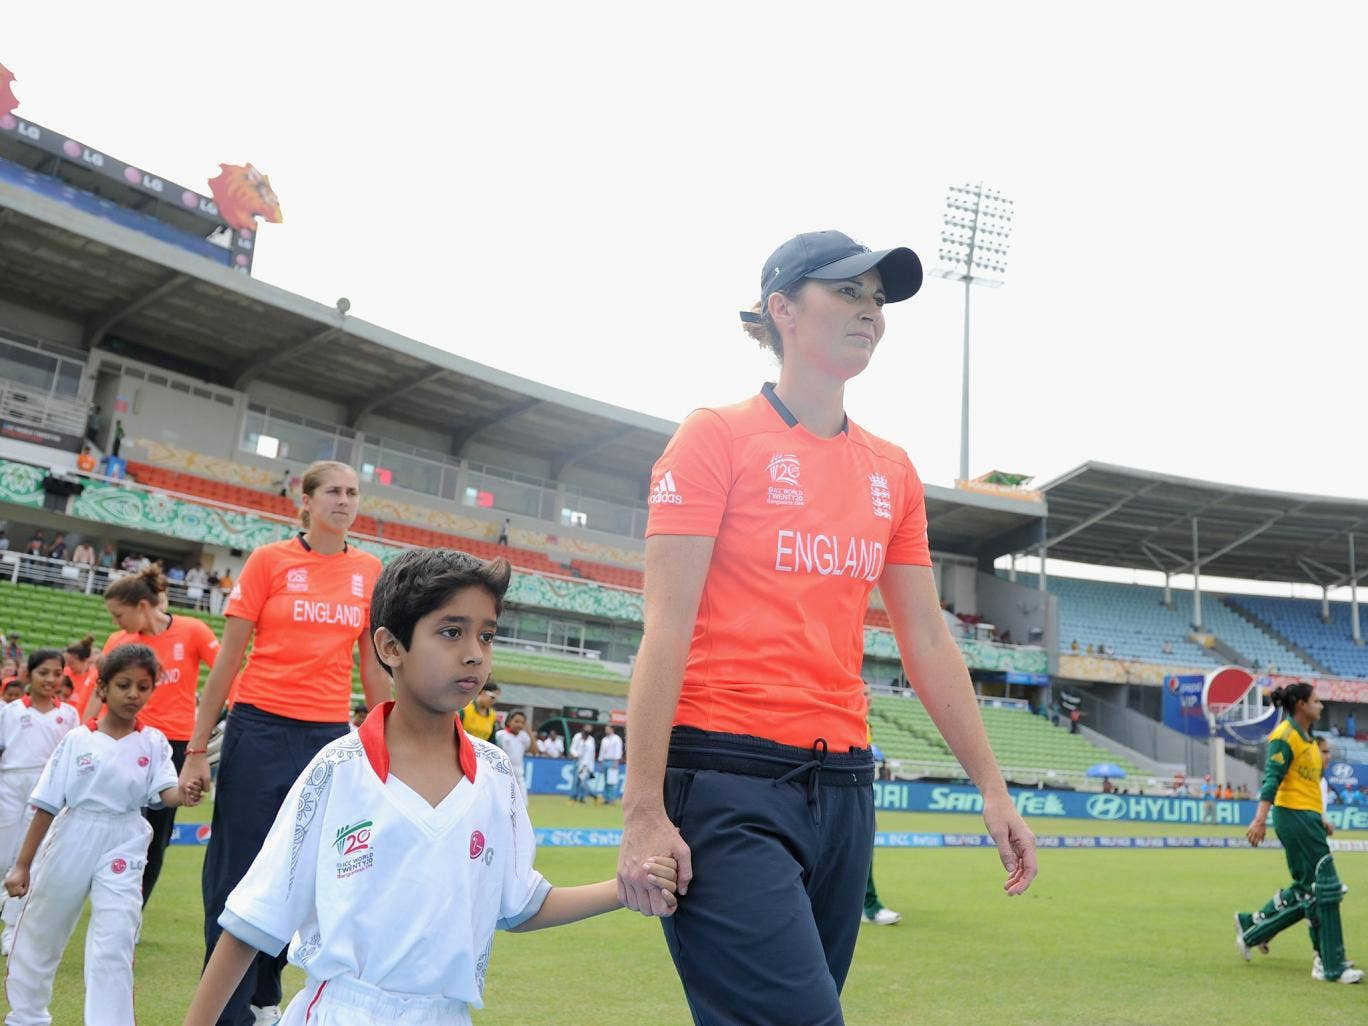 Charlotte Edwards leads out the England team in the victory over South Africa in the Women's World Twenty20